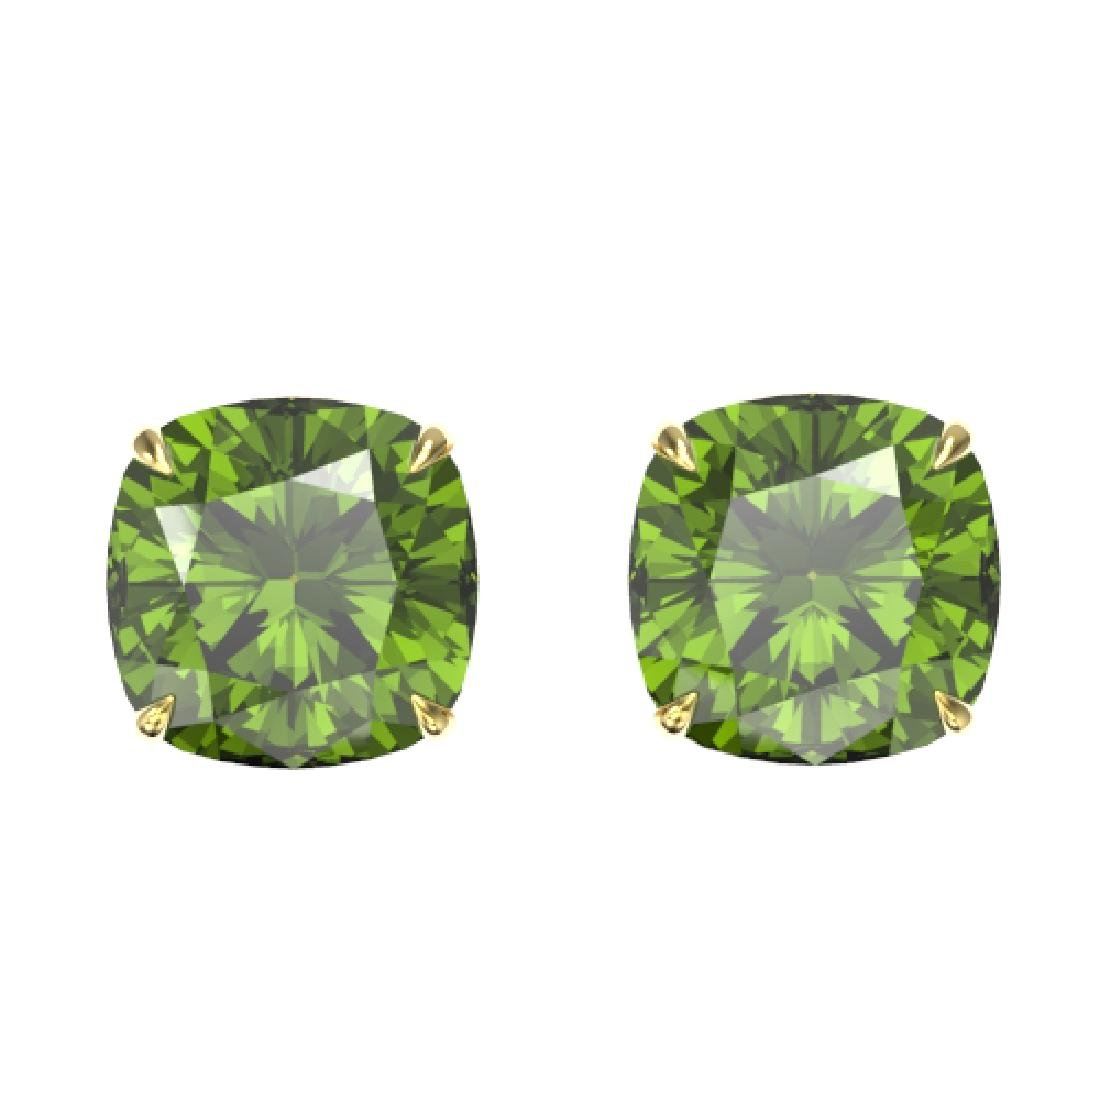 12 CTW Cushion Cut Green Tourmaline Designer Stud